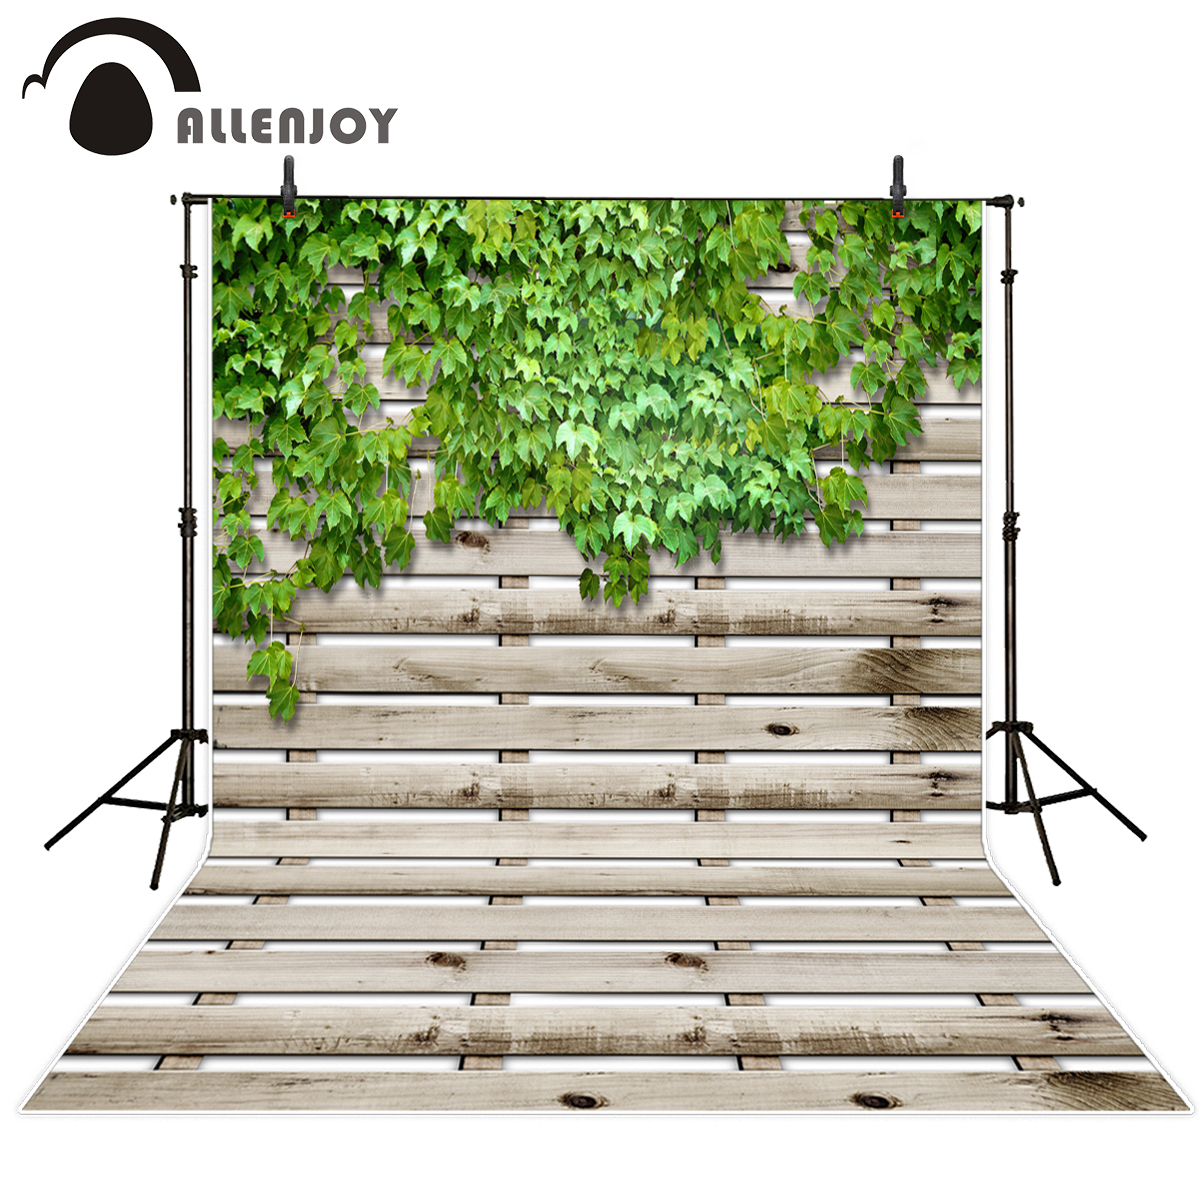 Online get cheap fence designs wood aliexpress alibaba group allenjoy vinyl backdrops for photography green plants wooden fence pastoral nature custom original design photography backdrops baanklon Choice Image